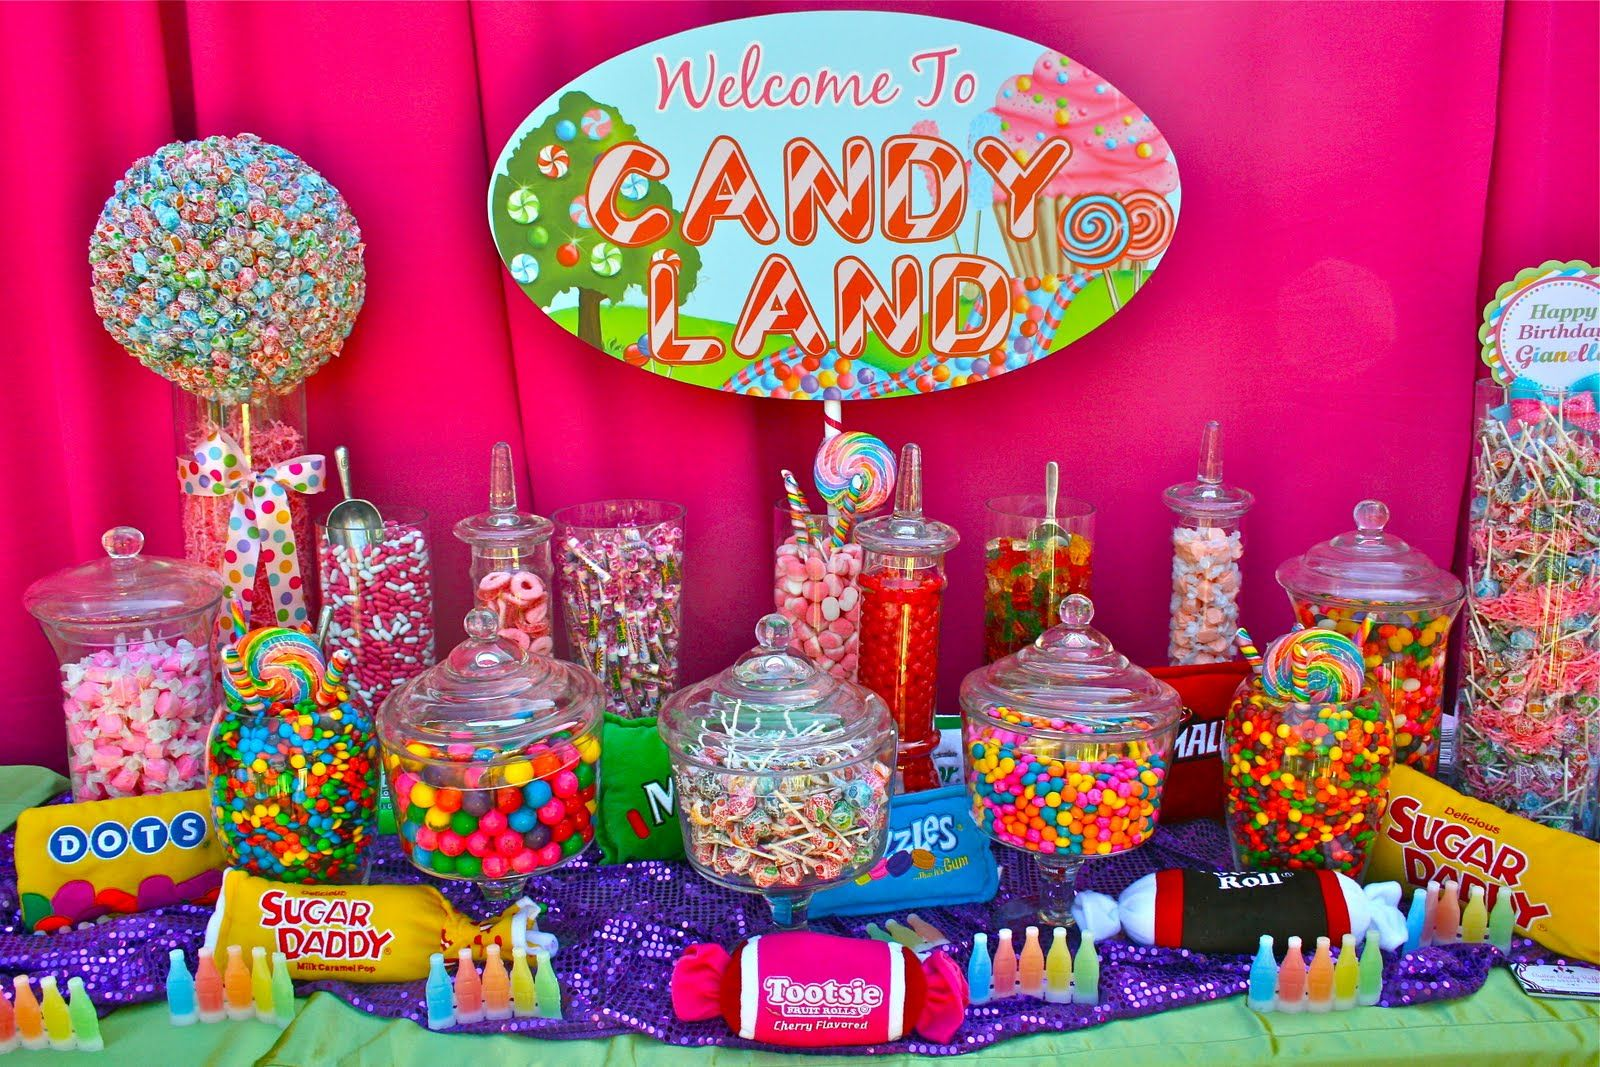 Candy buffet candy land quinceanera and party planning ideas pinterest candy land buffet - Candyland party table decorations ...